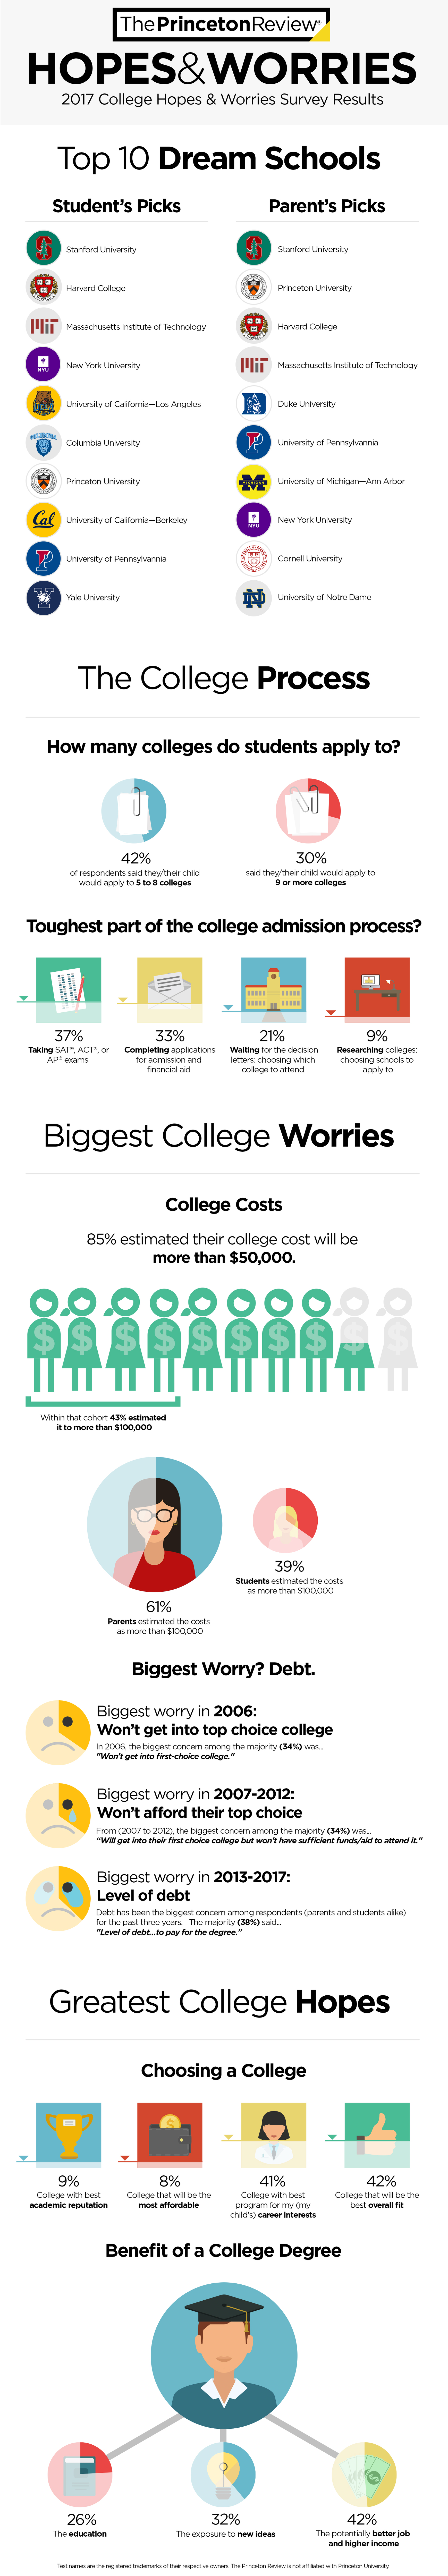 2017 College Hopes & Worries Infographic